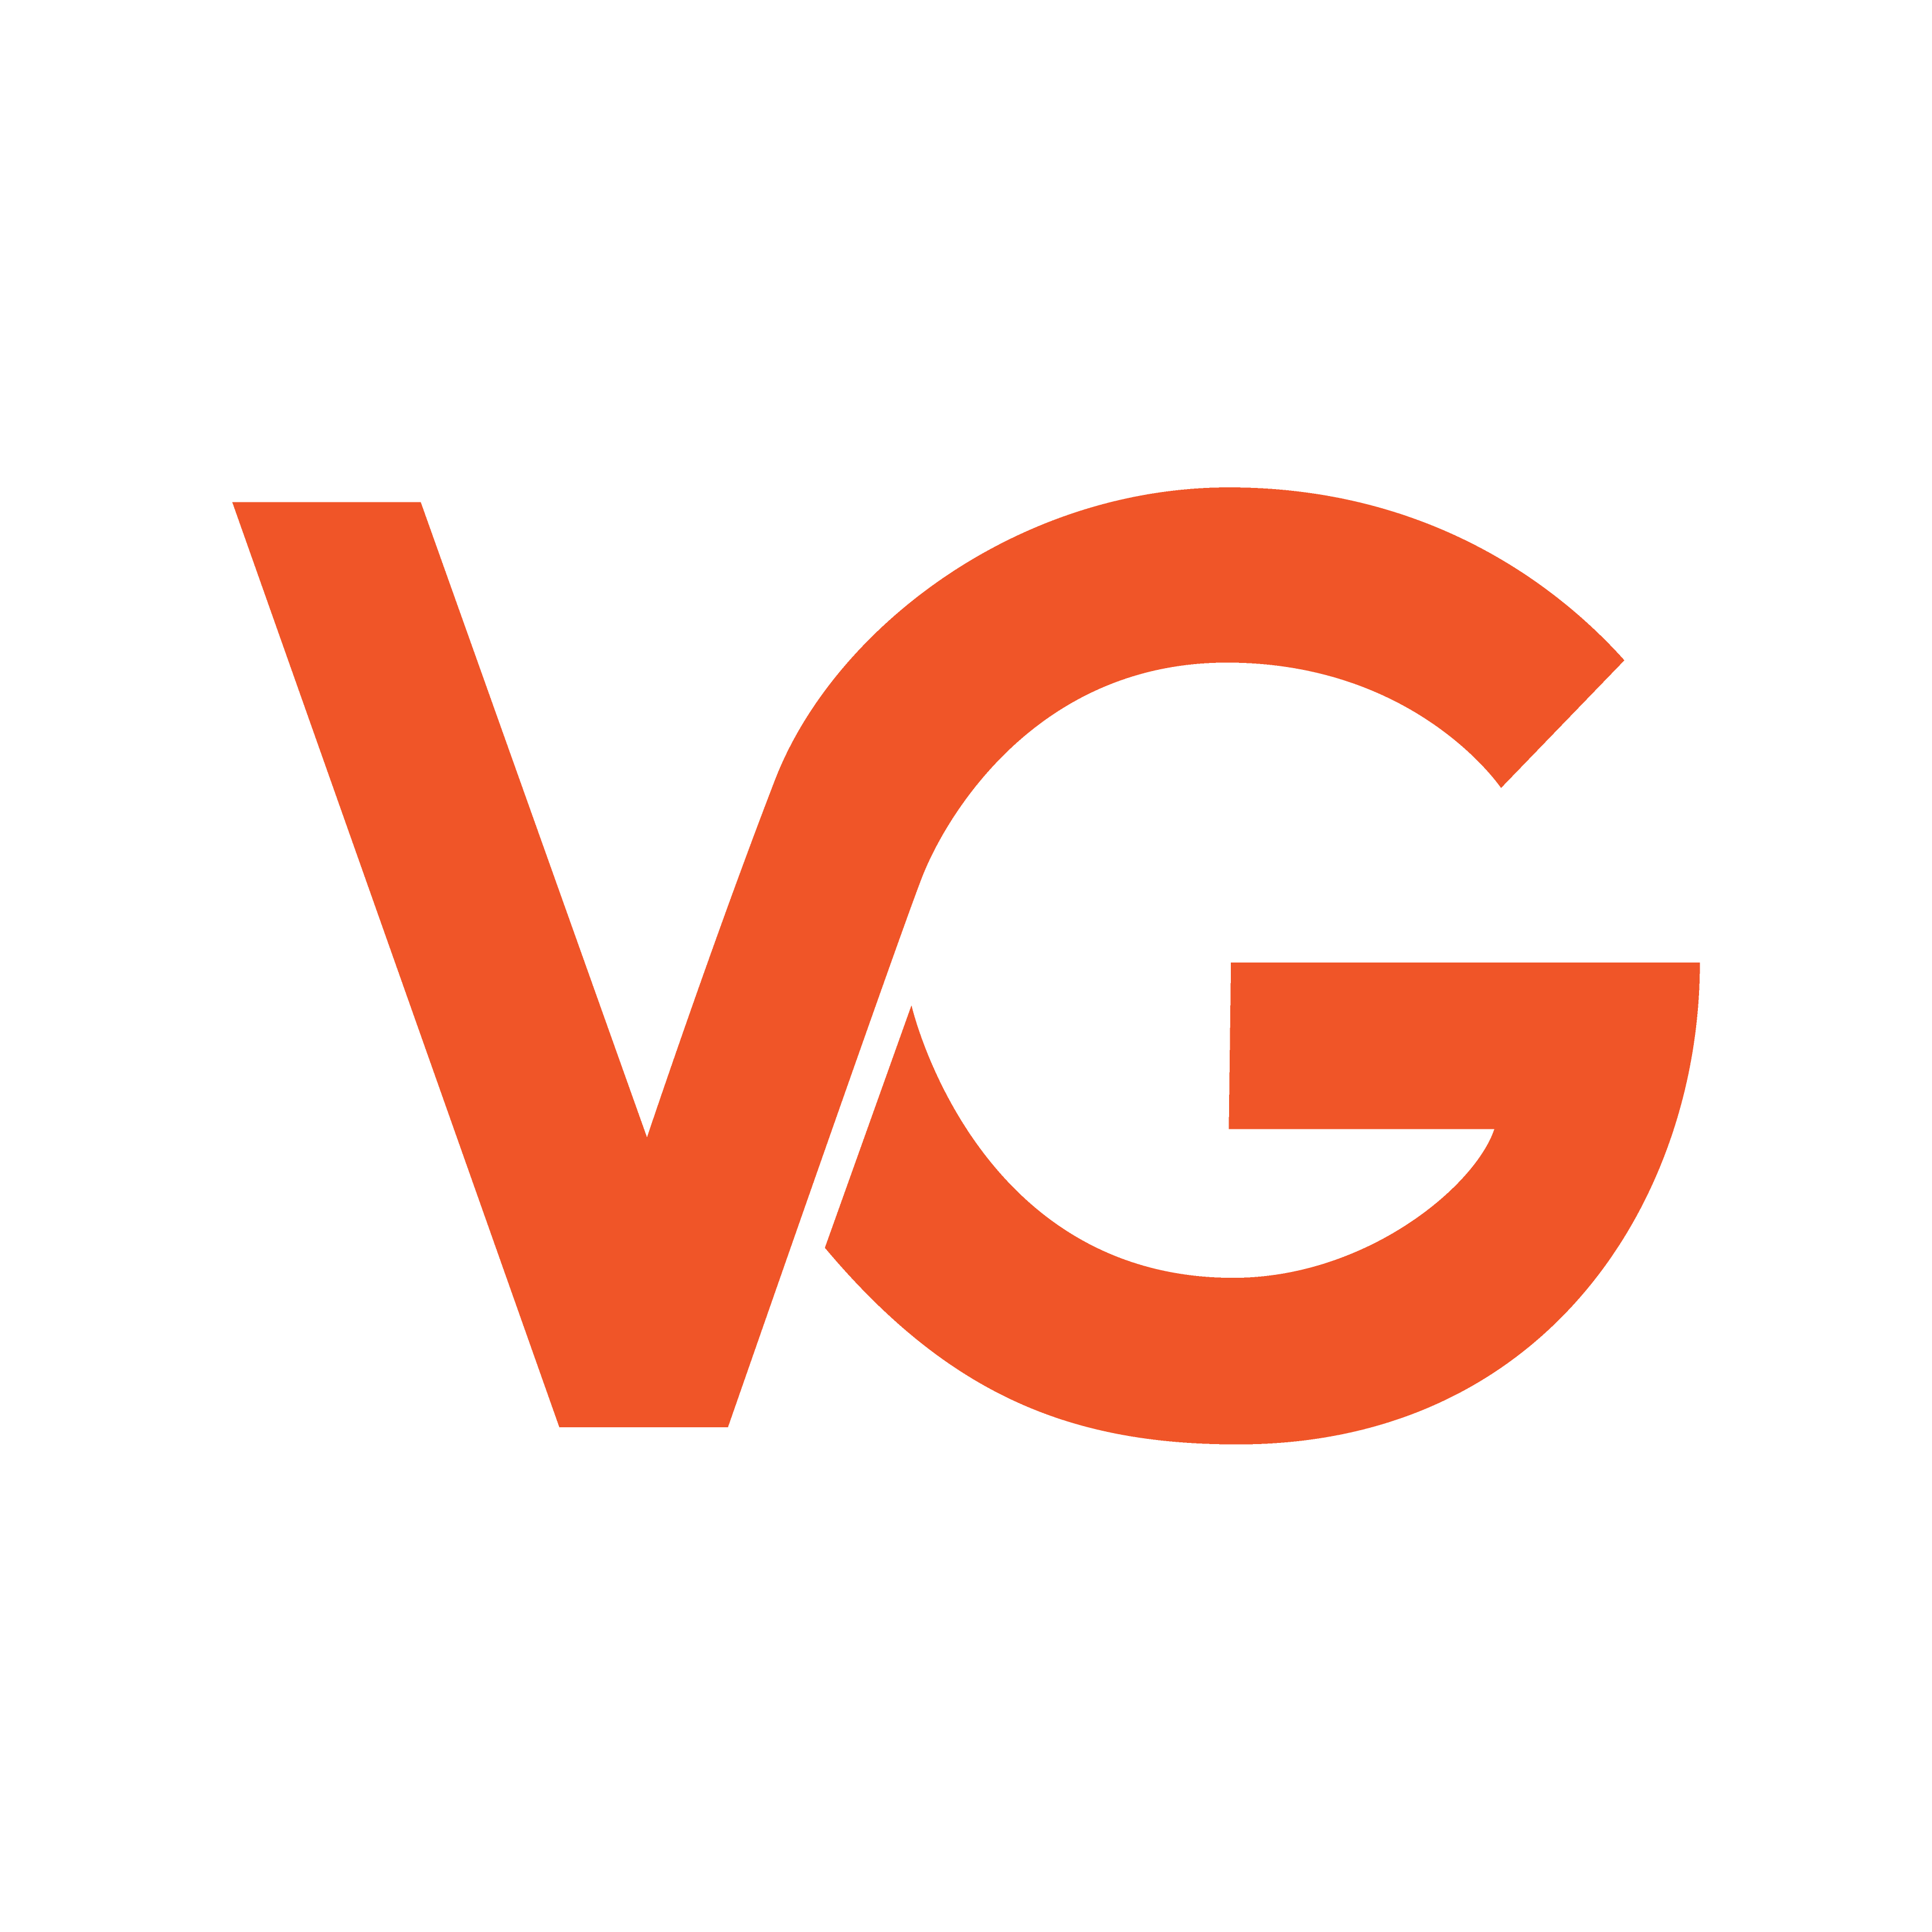 The Virtual Gurus | Buy 15 hours and receive 15 hours free